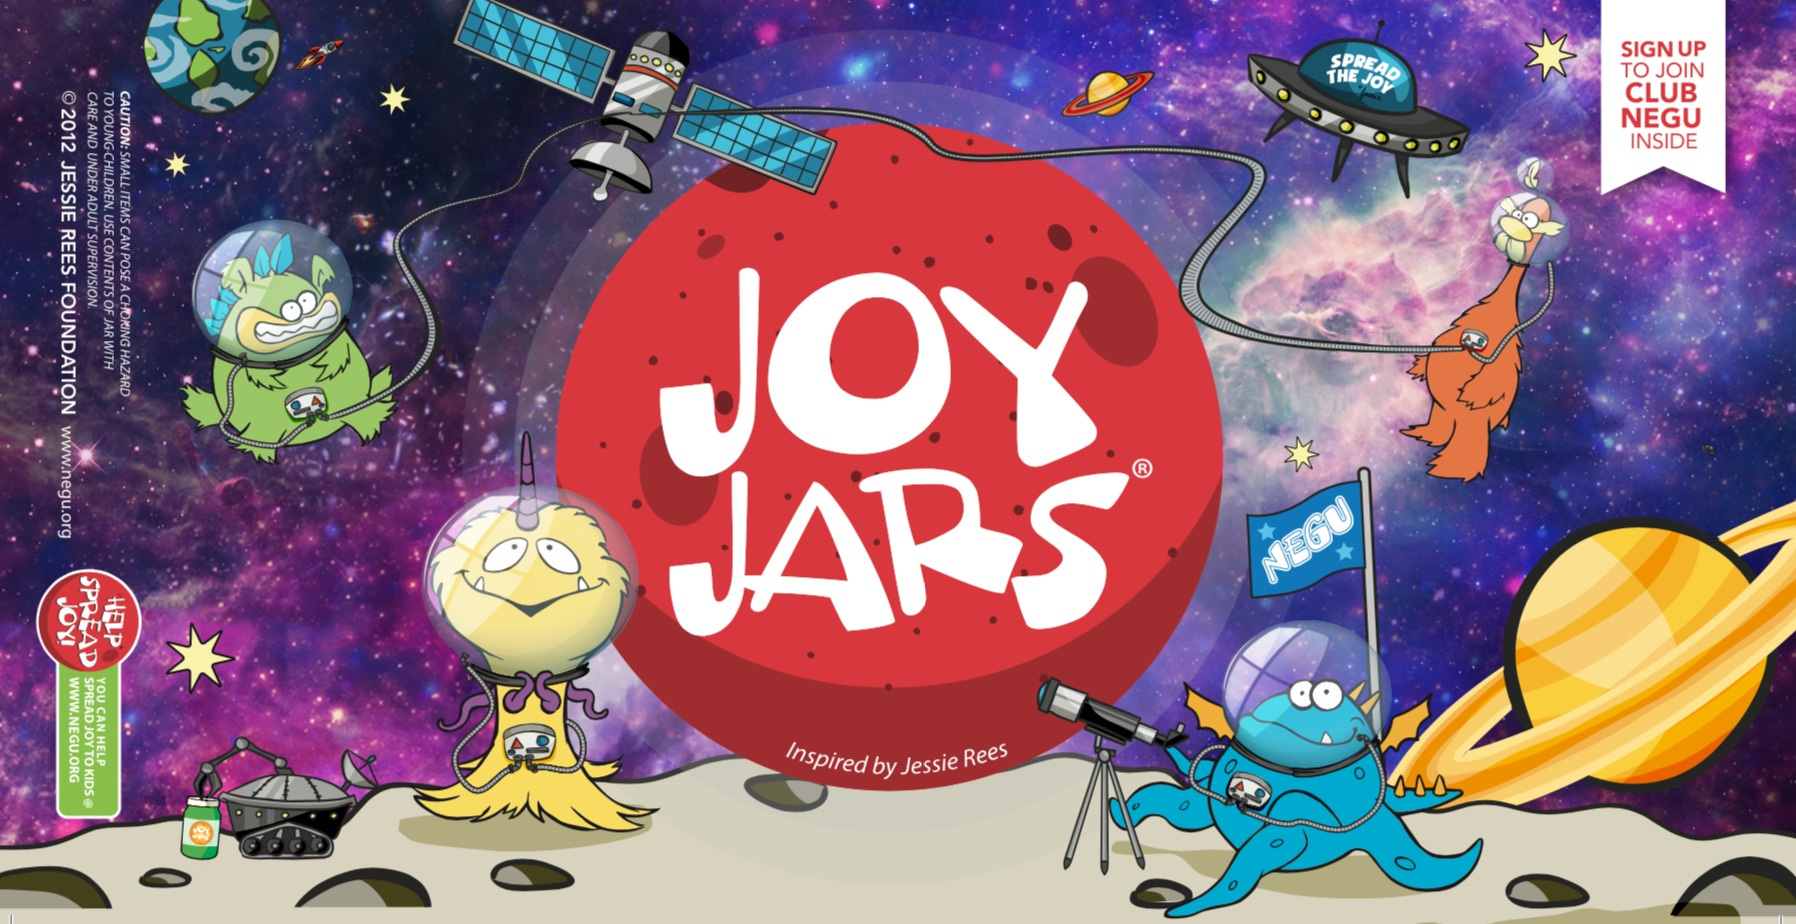 Outer Space JoyJars